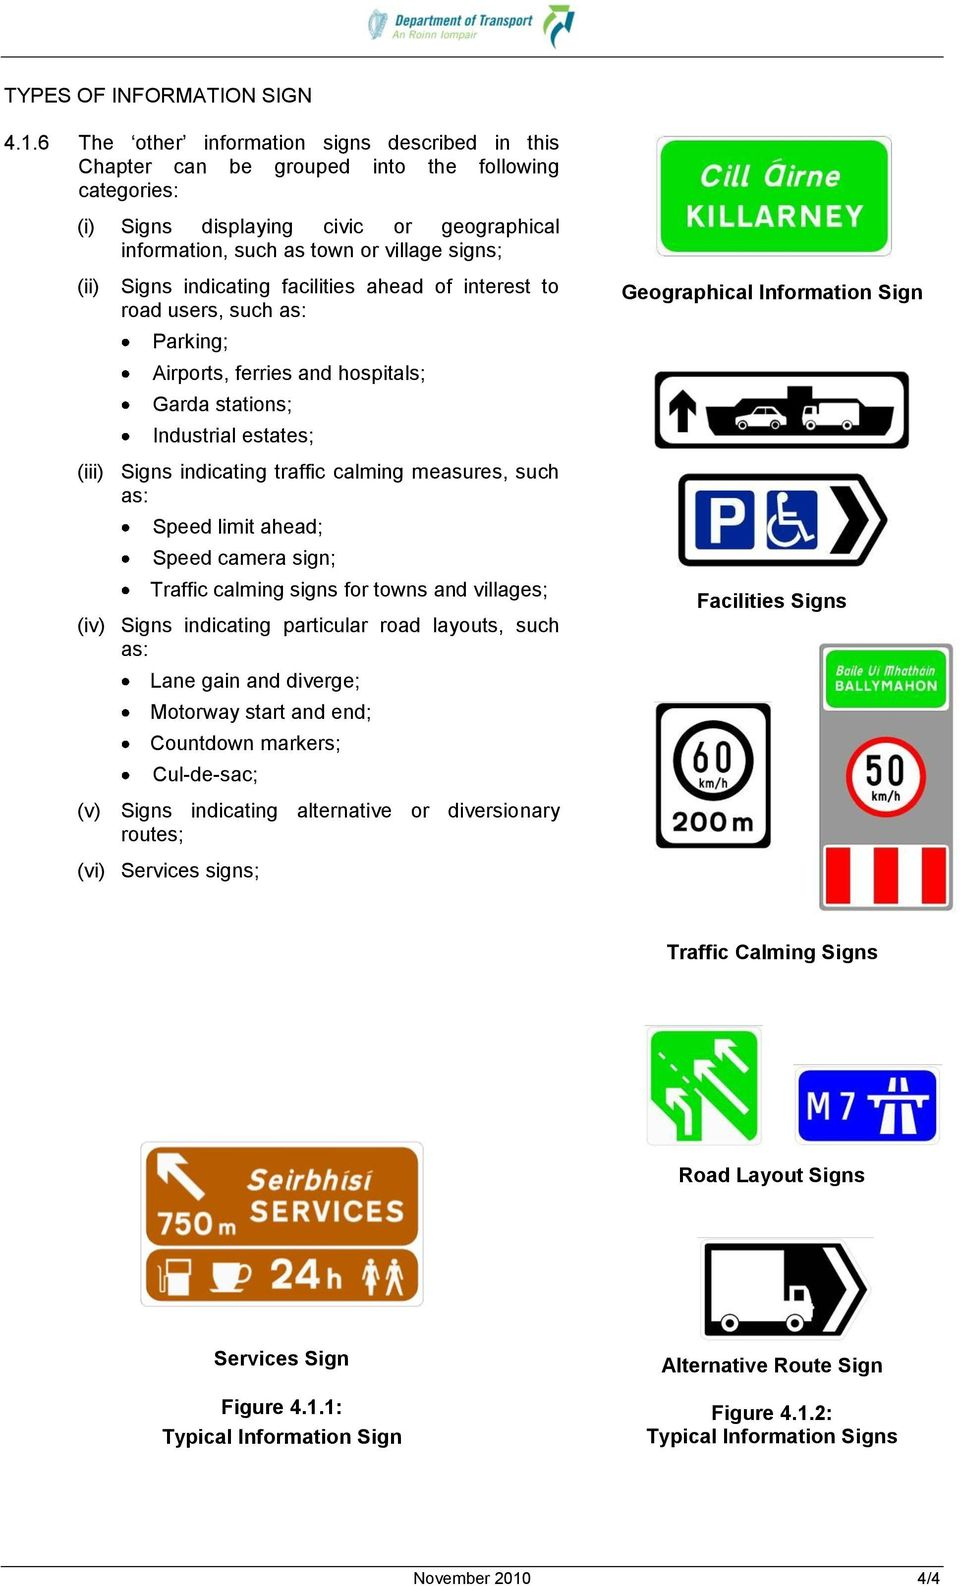 indicating facilities ahead of interest to road users, such as: Parking; Airports, ferries and hospitals; Garda stations; Industrial estates; (iii) Signs indicating traffic calming measures, such as: